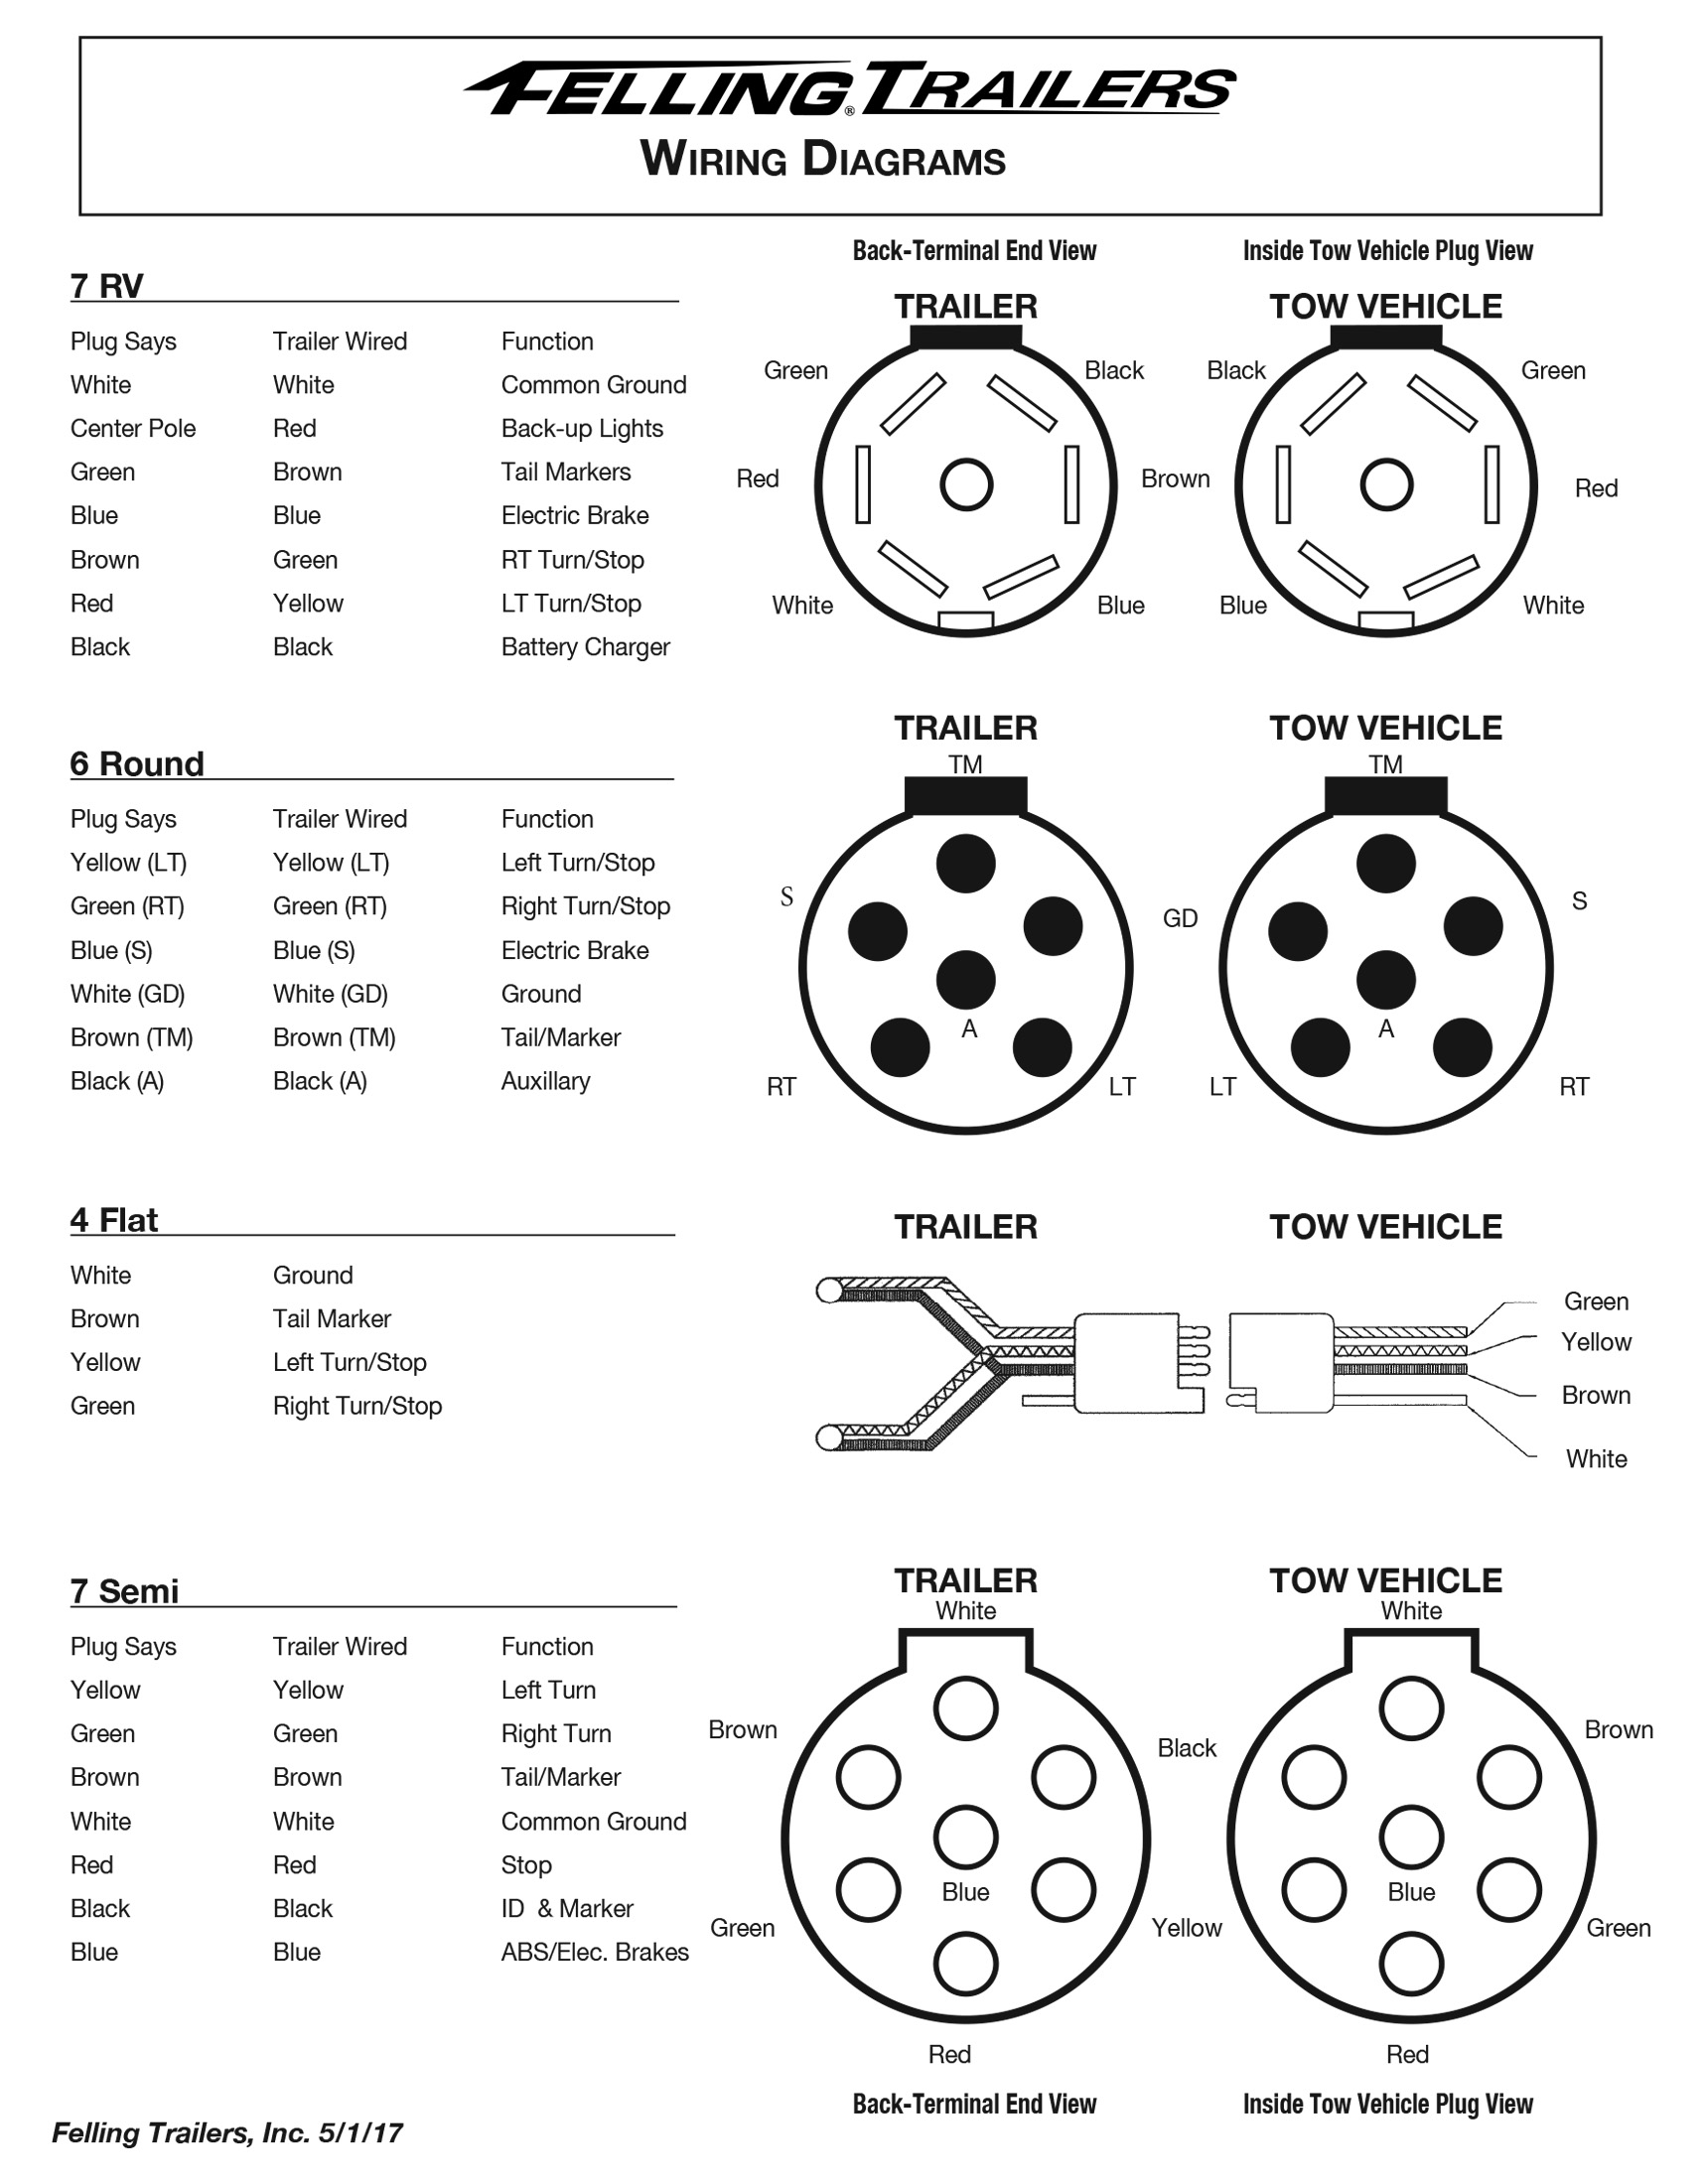 Service- Felling Trailers Wiring Diagrams, Wheel ToqueFelling Trailers